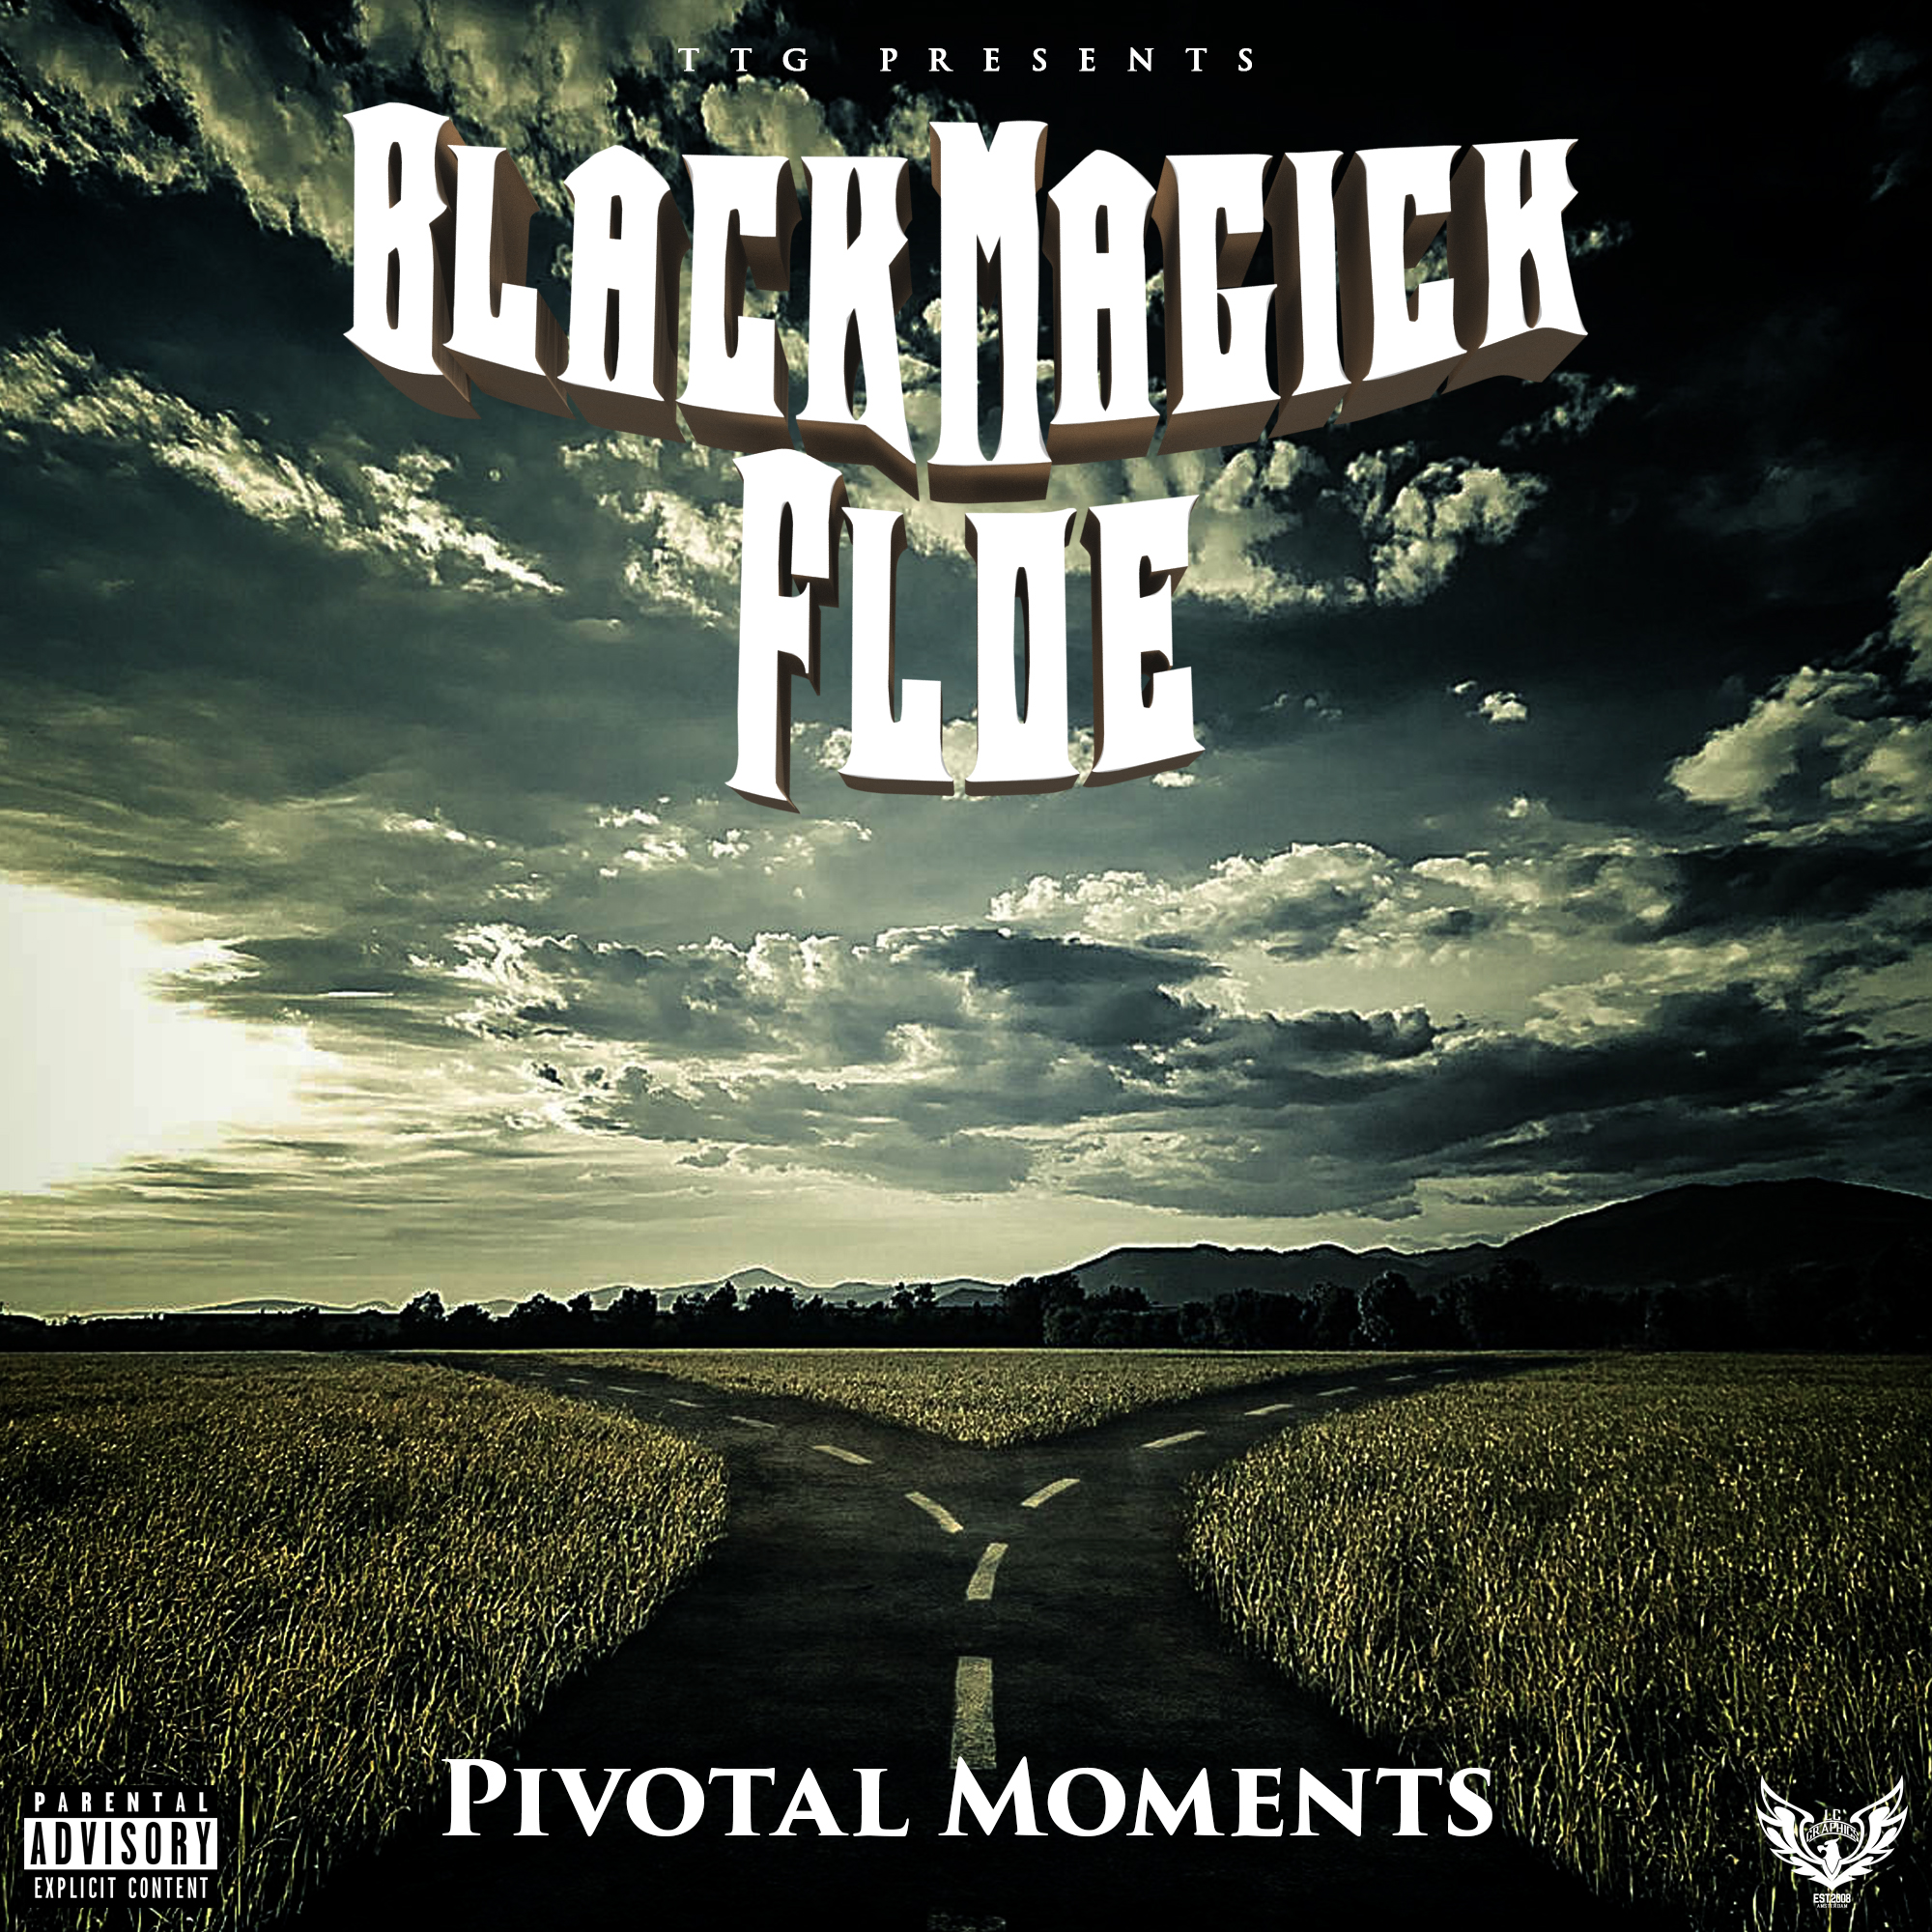 Black Magick Floe - Pivotal Moments cover art v2 (byLCGraphics)